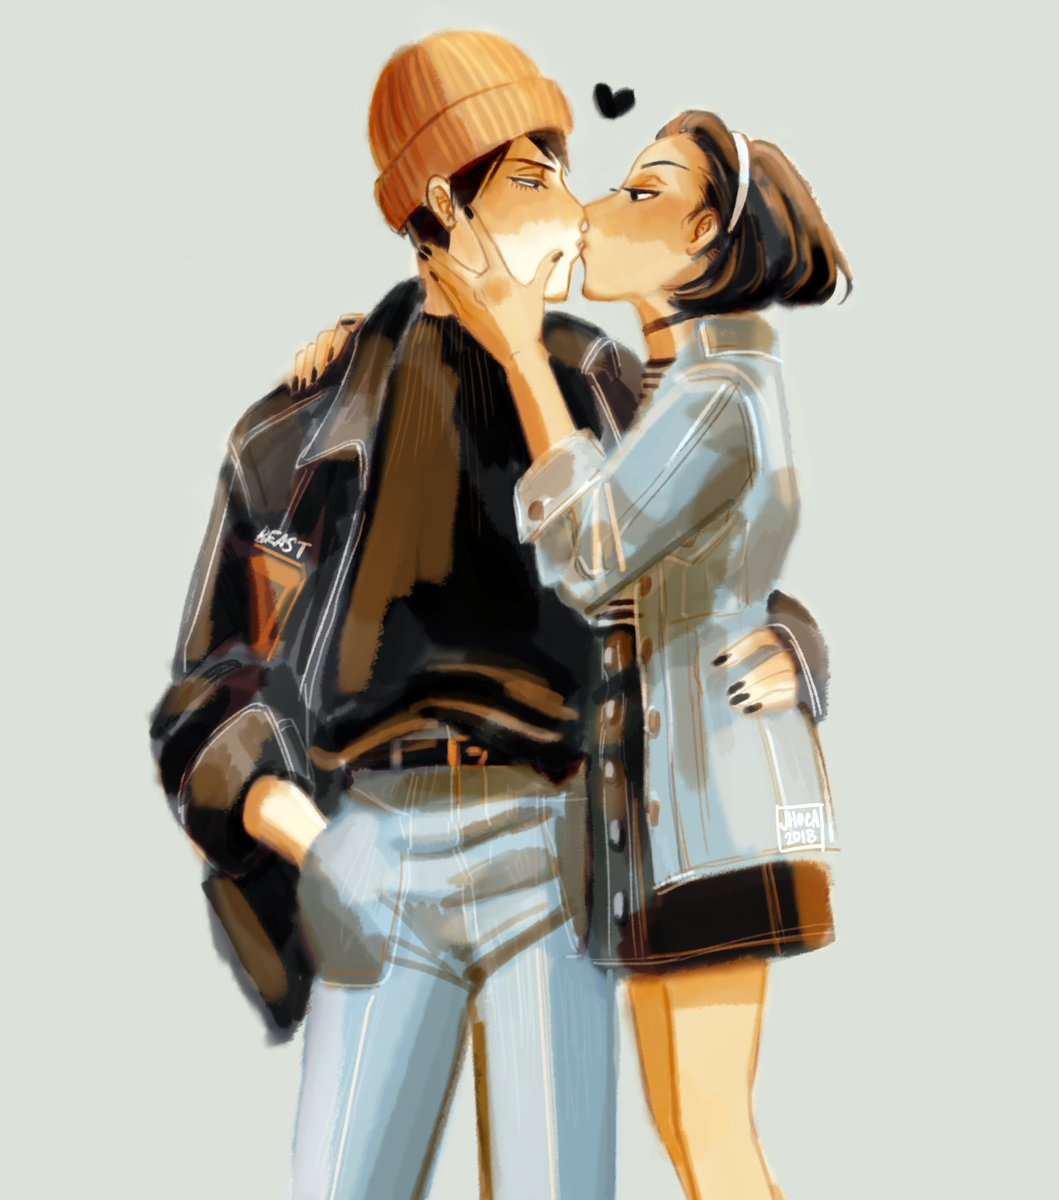 Jhoca Verdant Wind On Twitter Like They Just Popped Out Of A Cassette Tape Like They Belong In The Breakfast Club Like They Watch Movies At Drive In Theaters